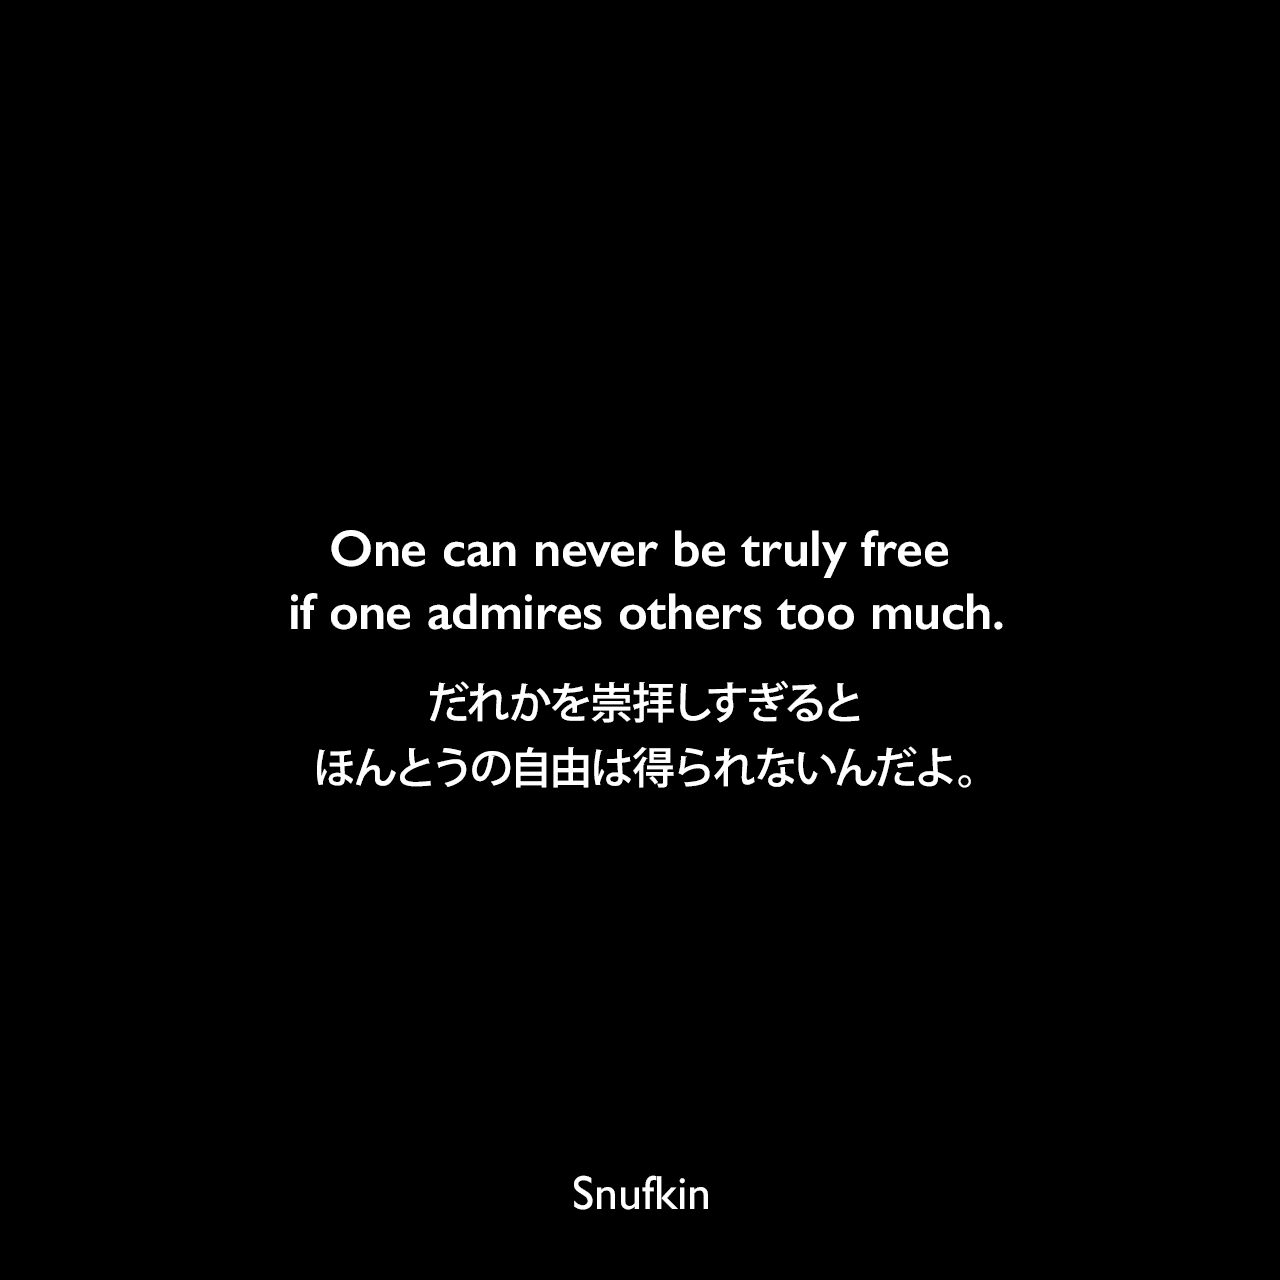 One can never be truly free if one admires others too much.だれかを崇拝しすぎると、ほんとうの自由は得られないんだよ。Snufkin